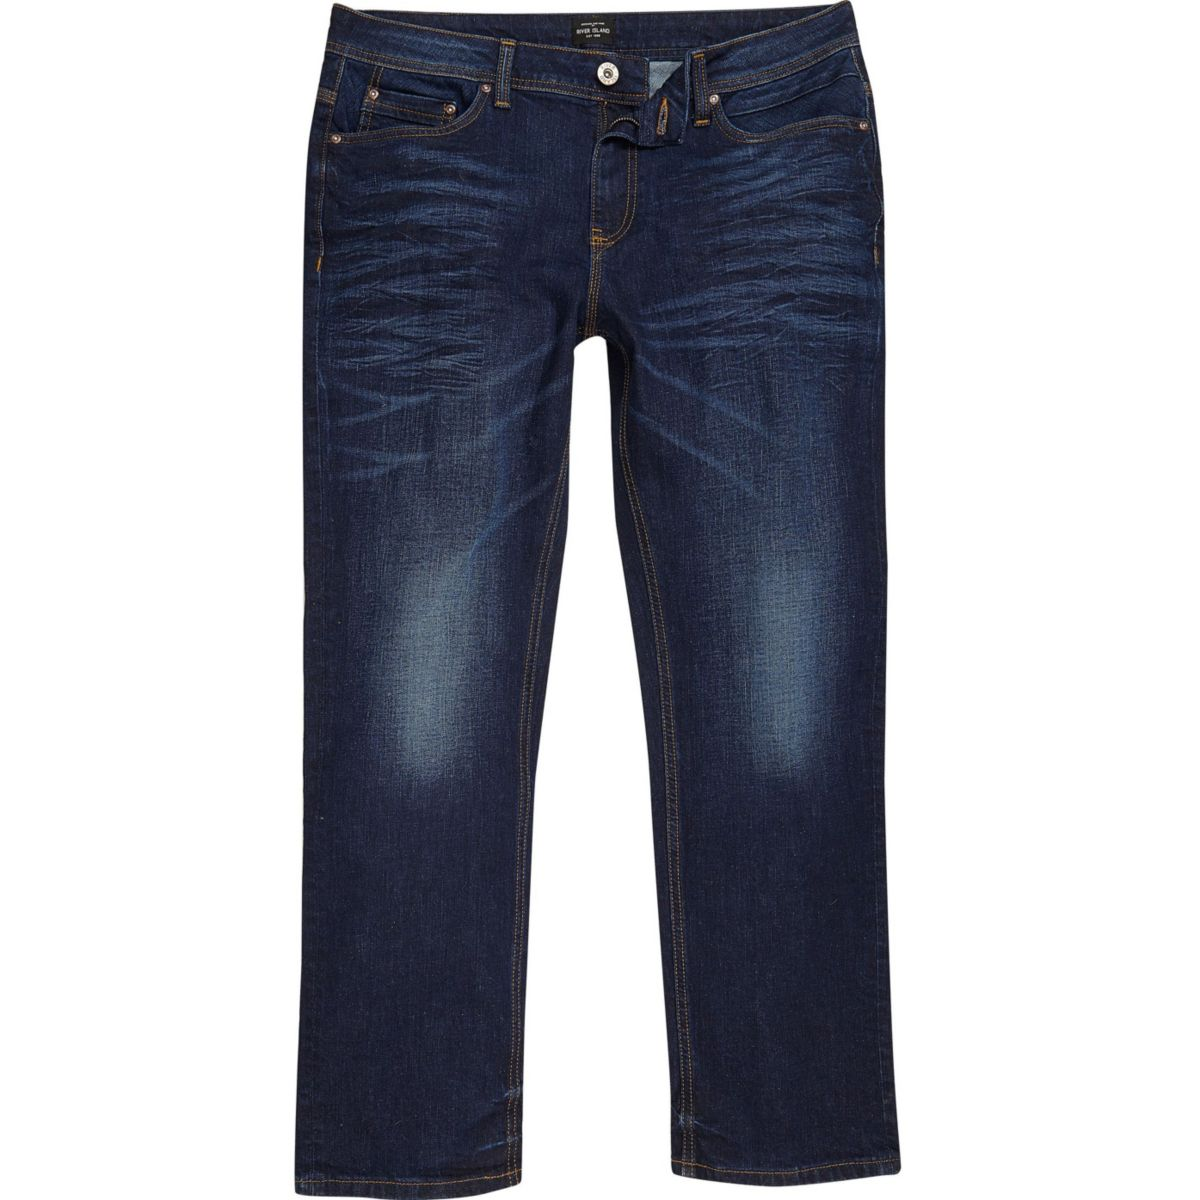 MakeYourOwnJeans®: Made To Measure Custom Jeans For Men & Women: Big and Tall Jeans - Suits Jeans Jackets Pants Leather More make your own jeans, custom jeans, big and tall jeans, tailored jeans, custom suits, leathe jackets, designer jeans. Categories.